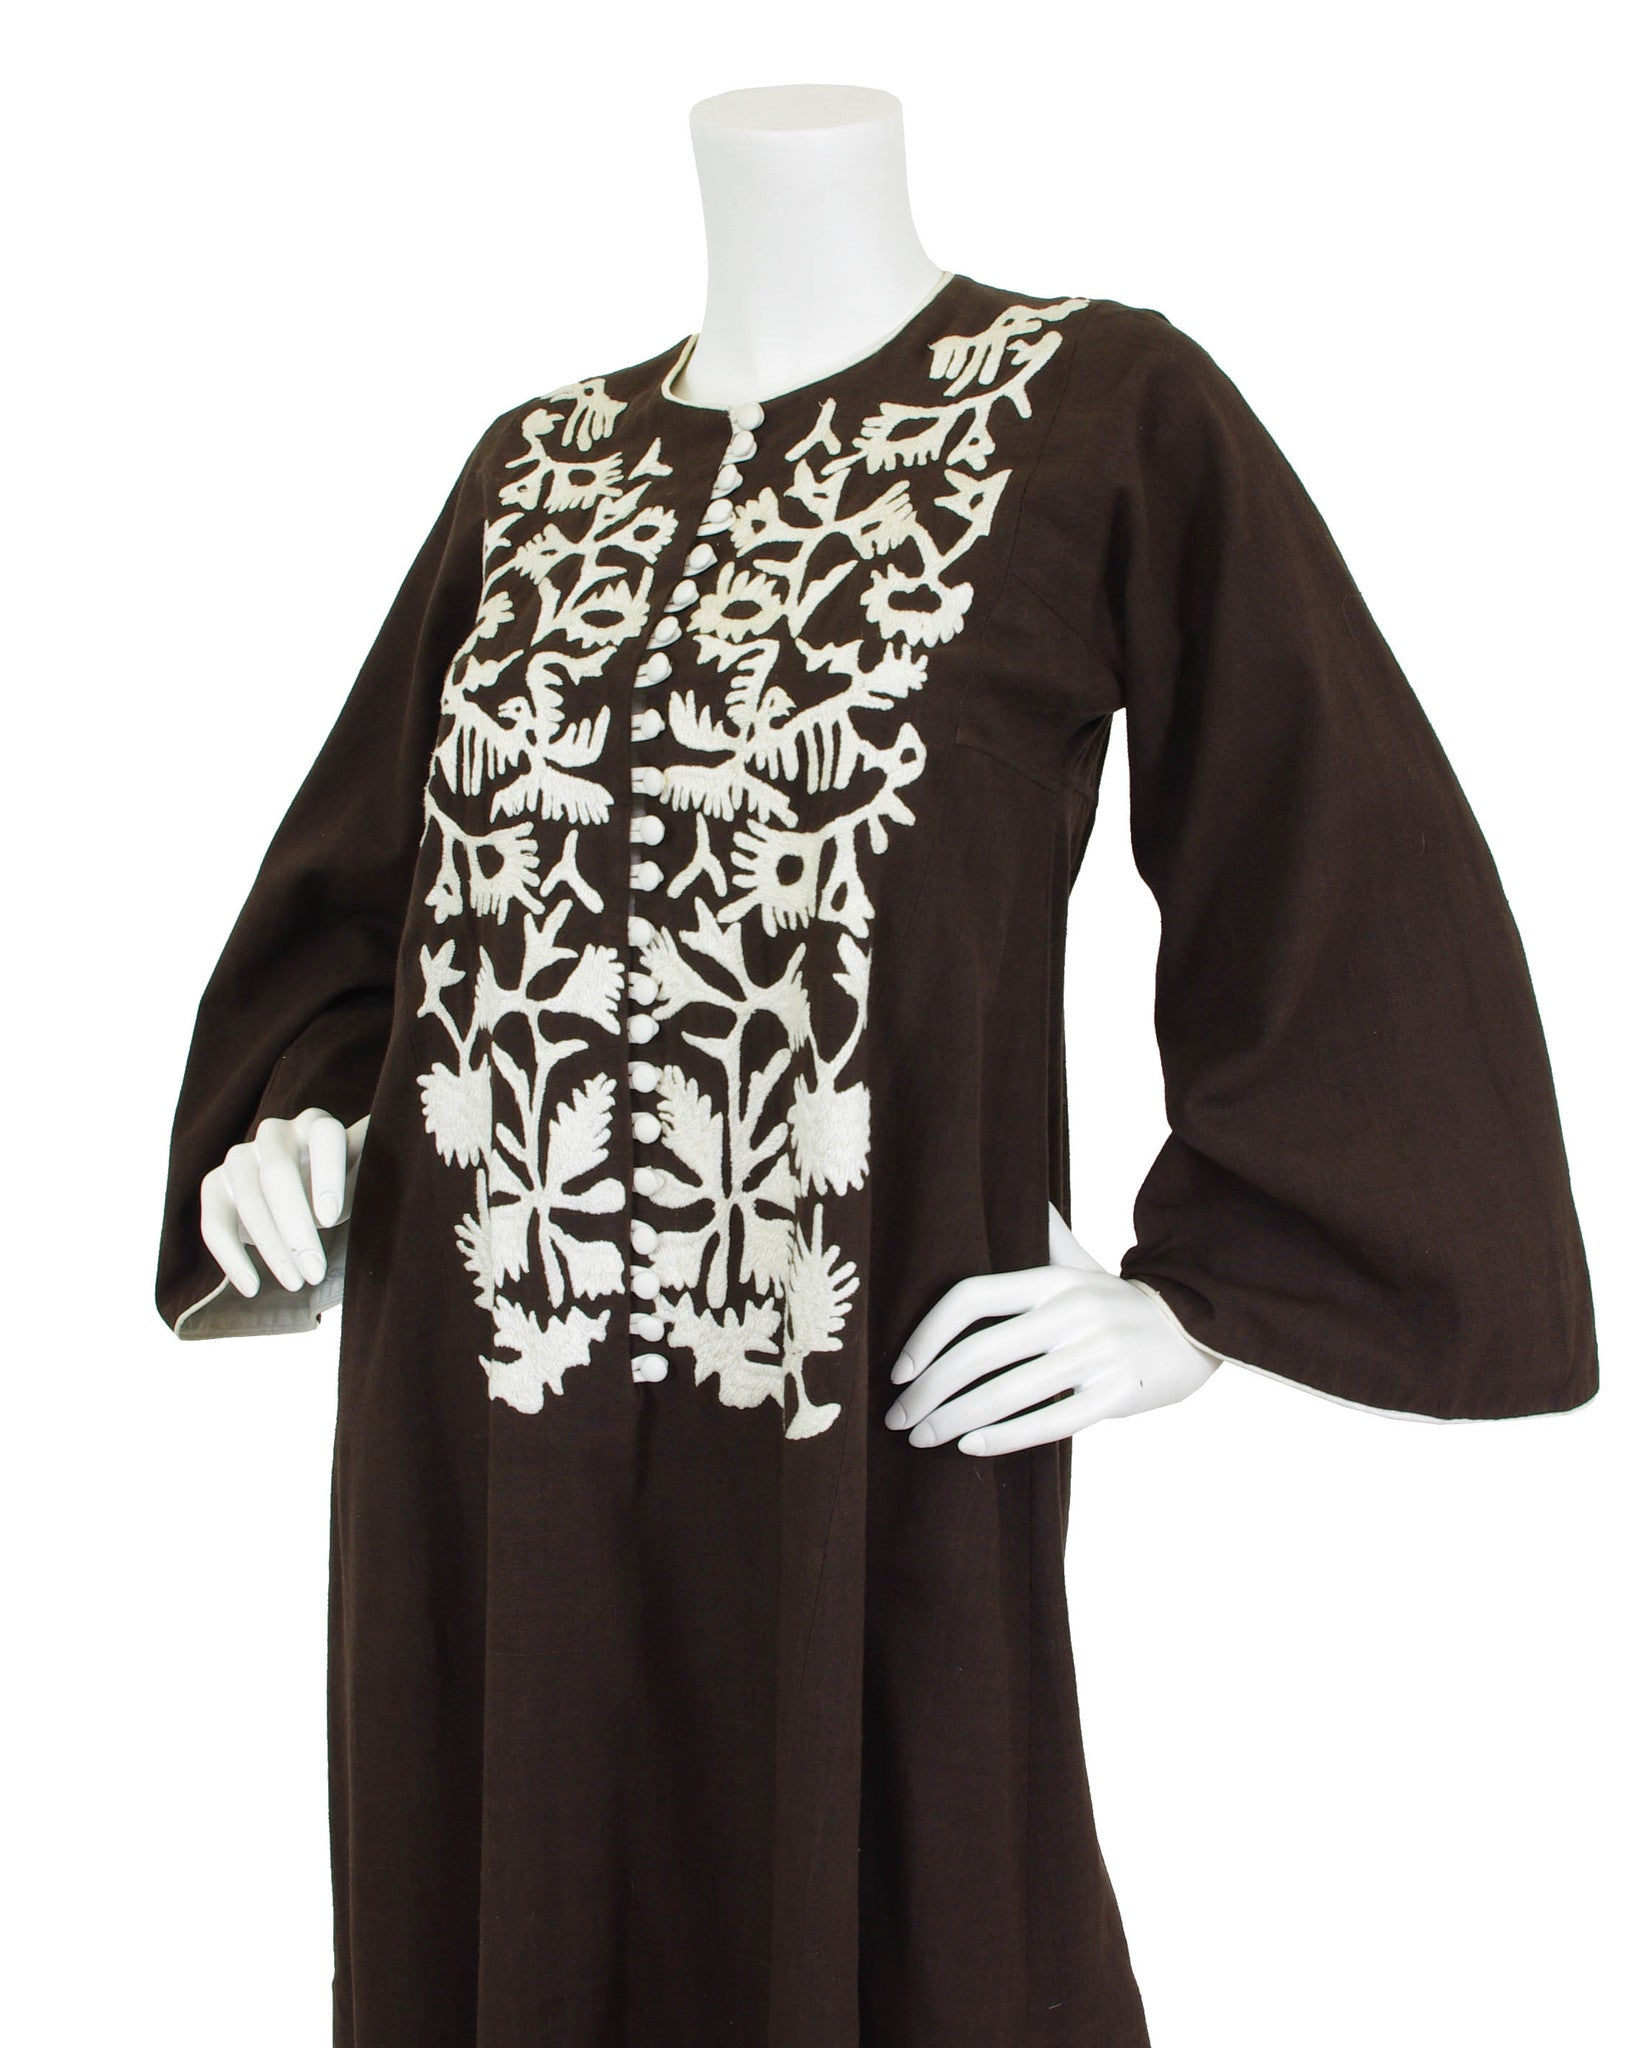 1970s Brown Embroidered Cotton Caftan